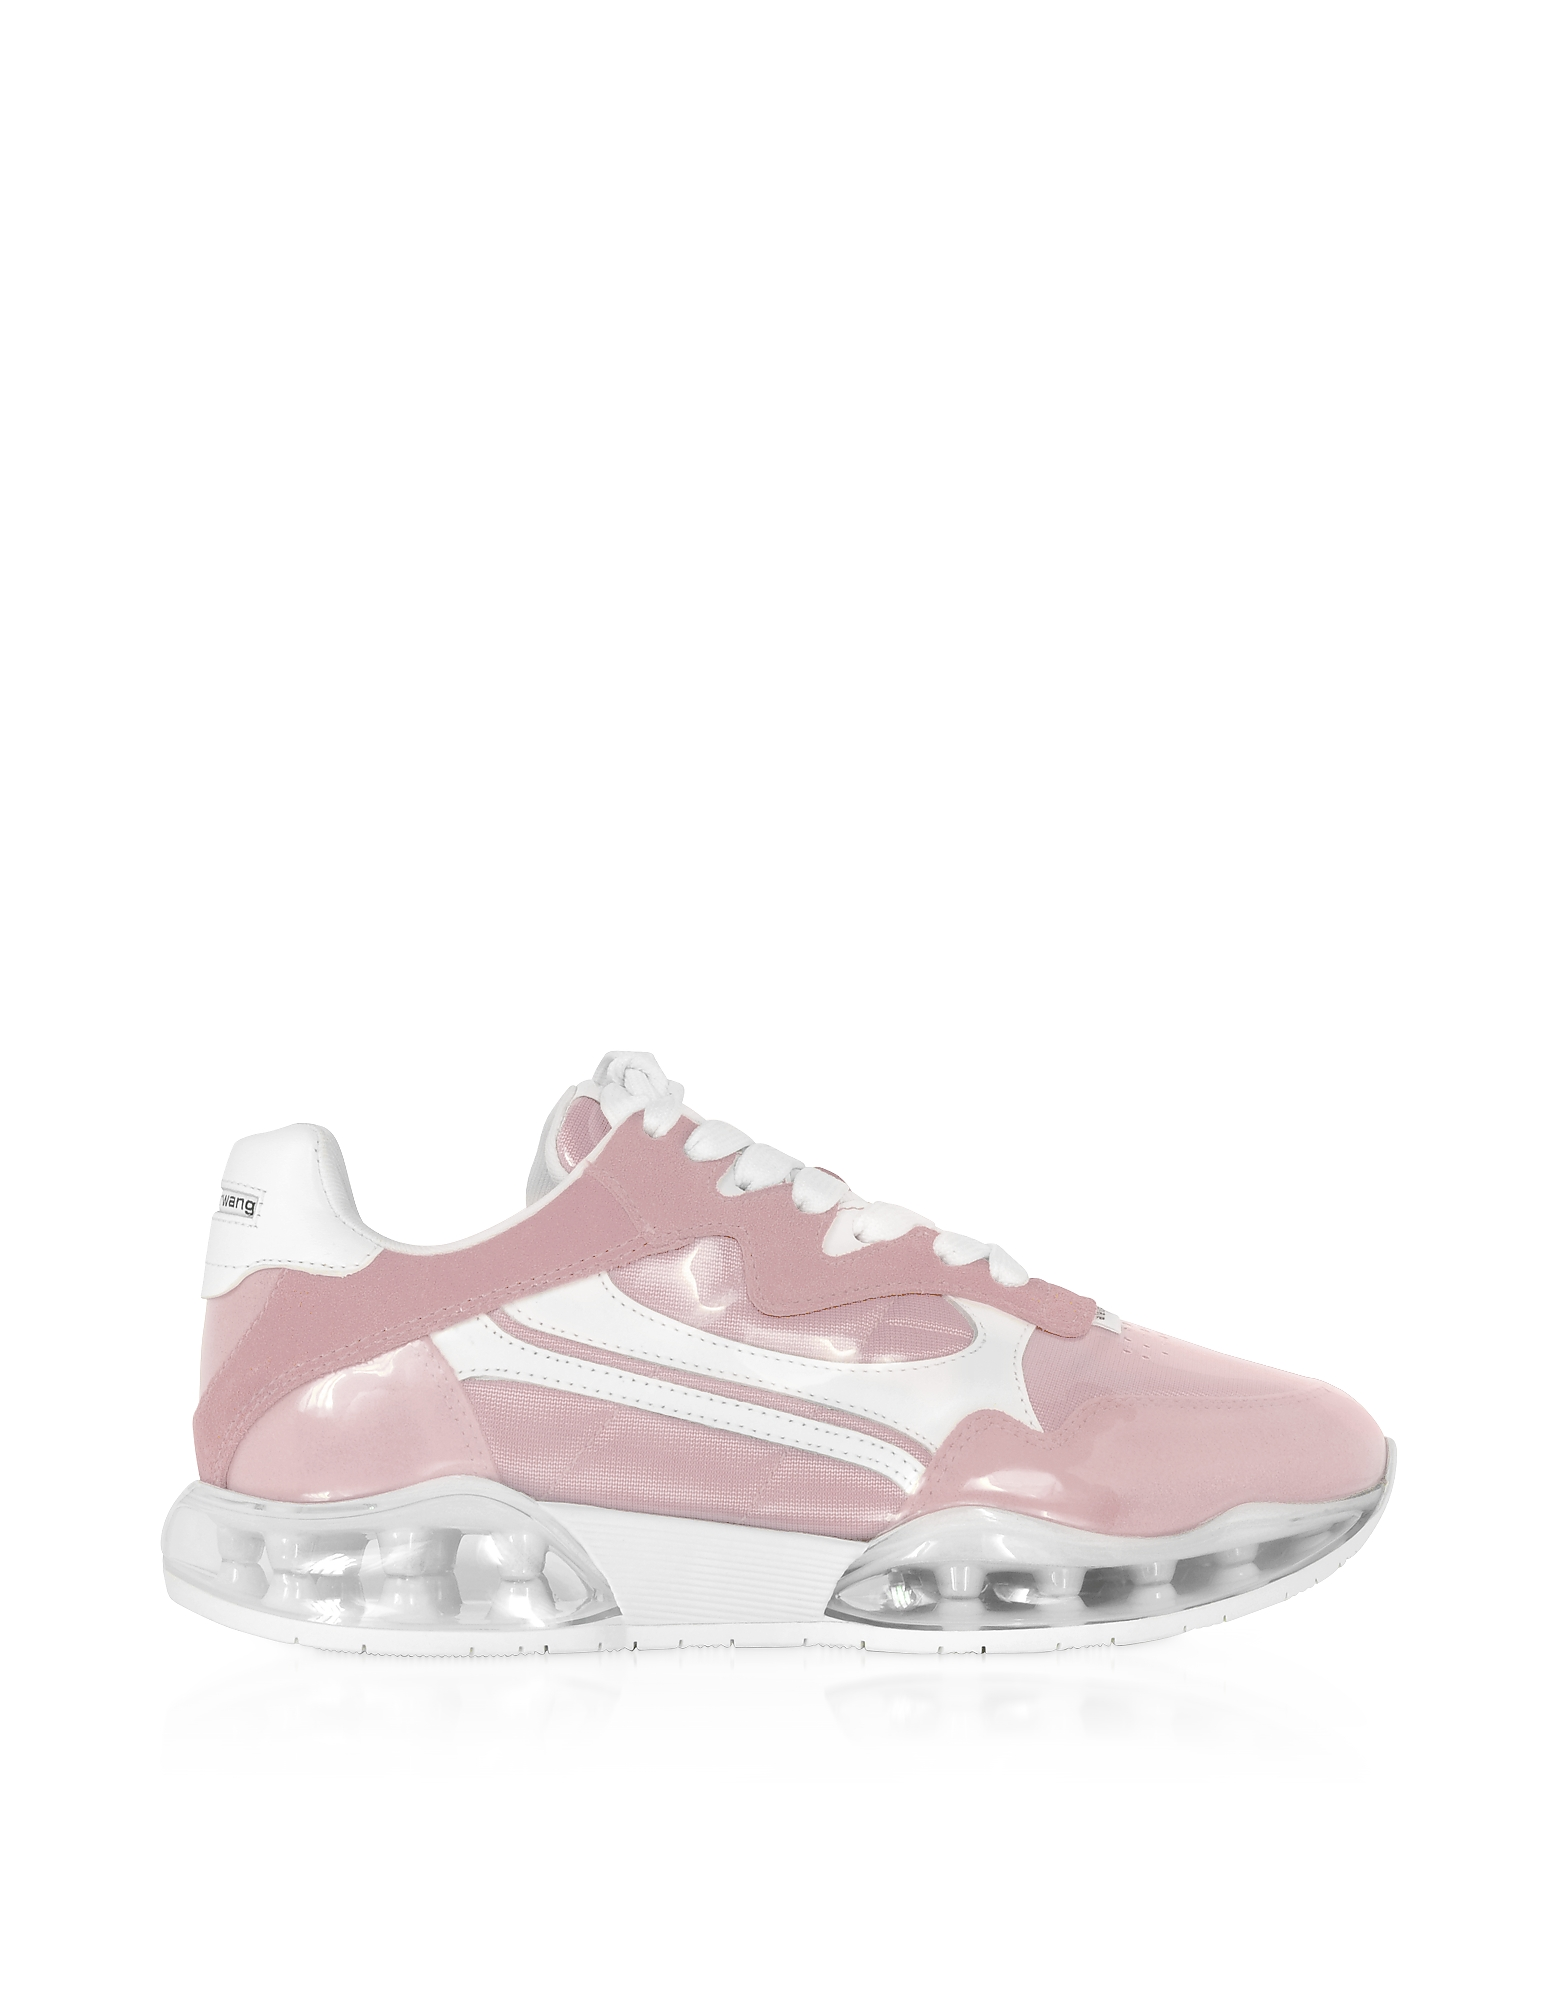 AWNYC Stadium Pink Coated Nylon and Suede Women's Sneakers